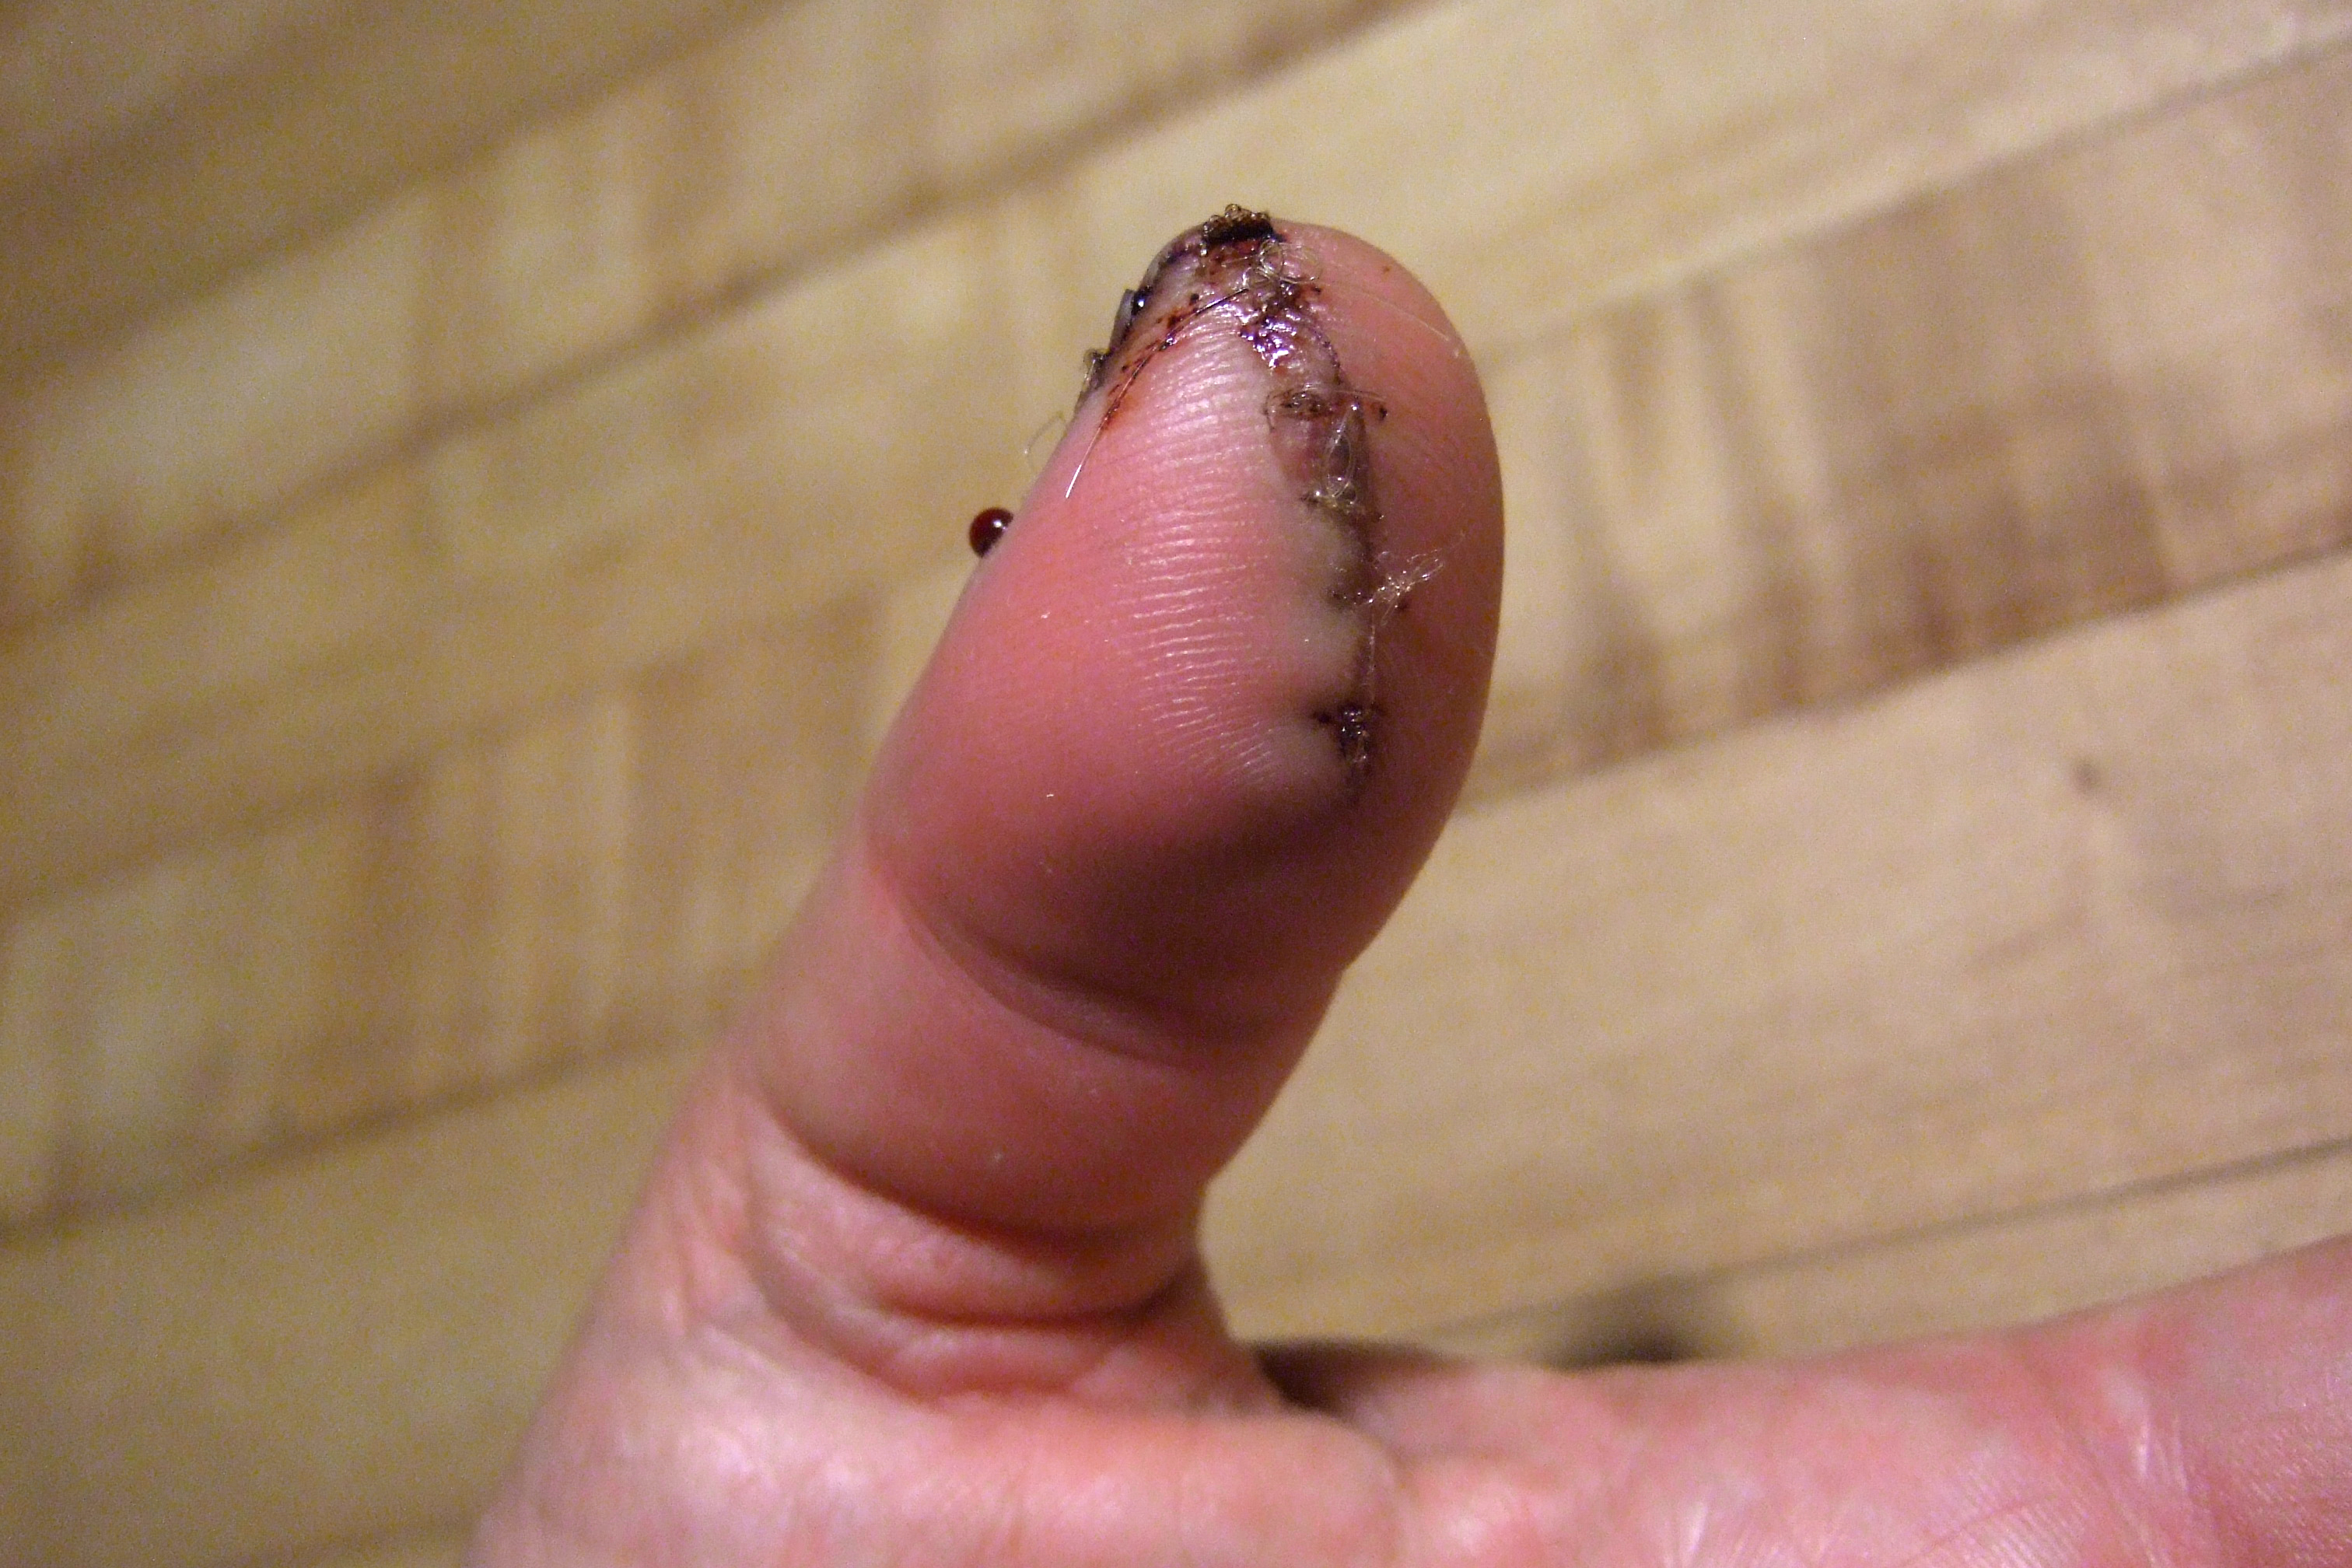 Thumb stitches by Ginger Allman